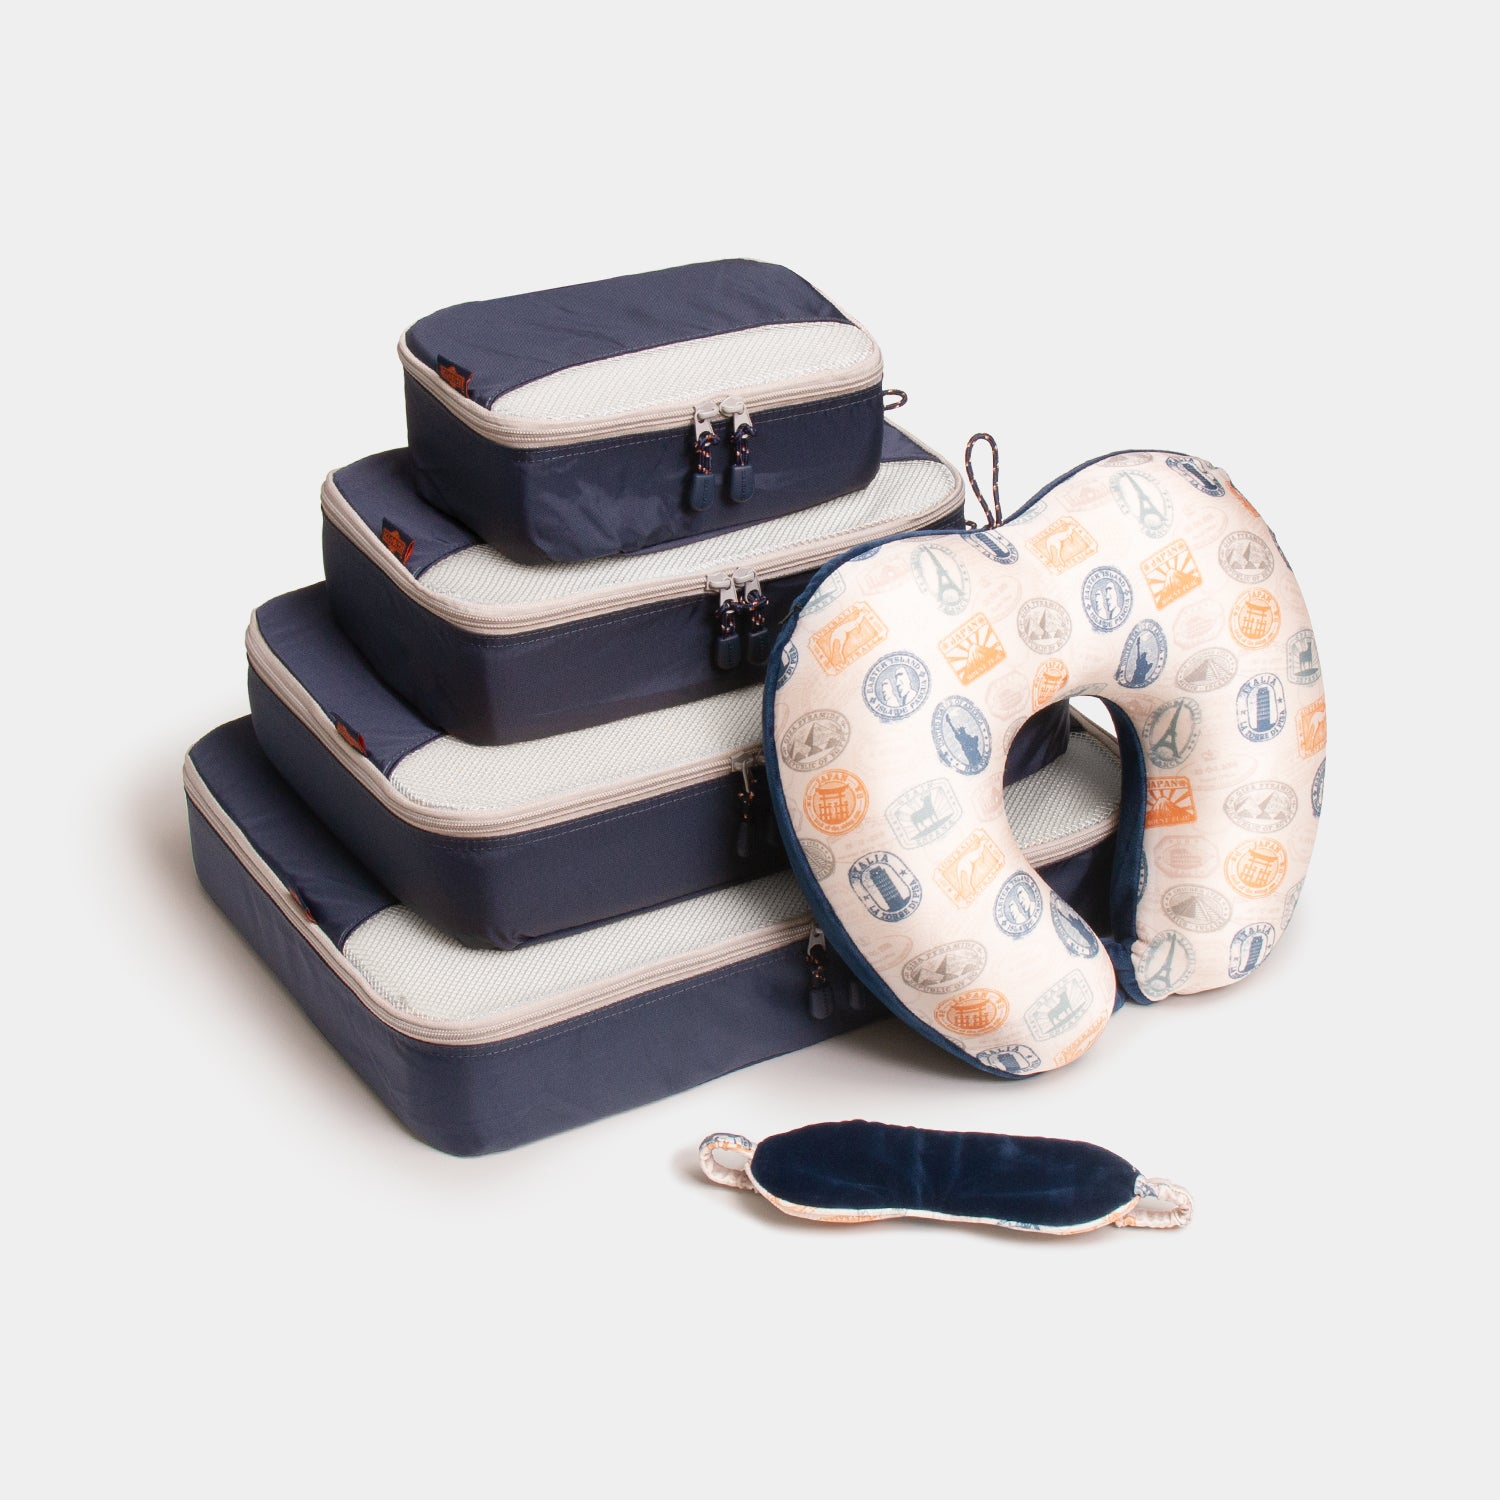 Packing Cubes & Travel Pillow Bundle - Navy - globite